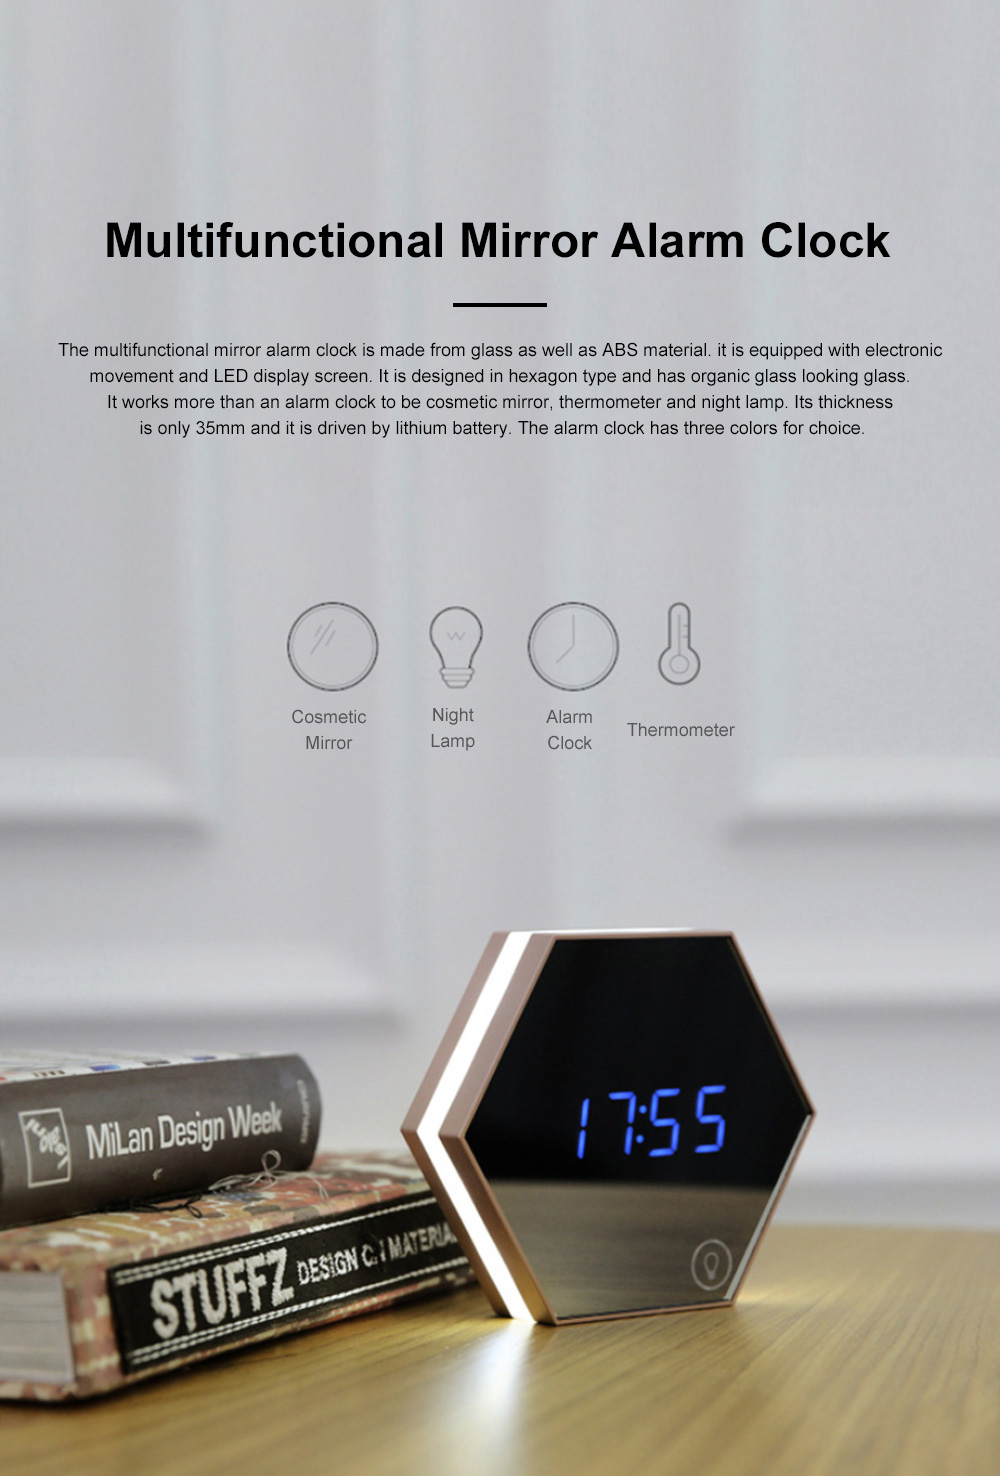 Multifunctional Mirror Alarm Clock for Office Bedroom Use Sophisticated Infinitely Adjustable Light LED Clock Clearly Visible Time Display Cosmetic Mirror 0